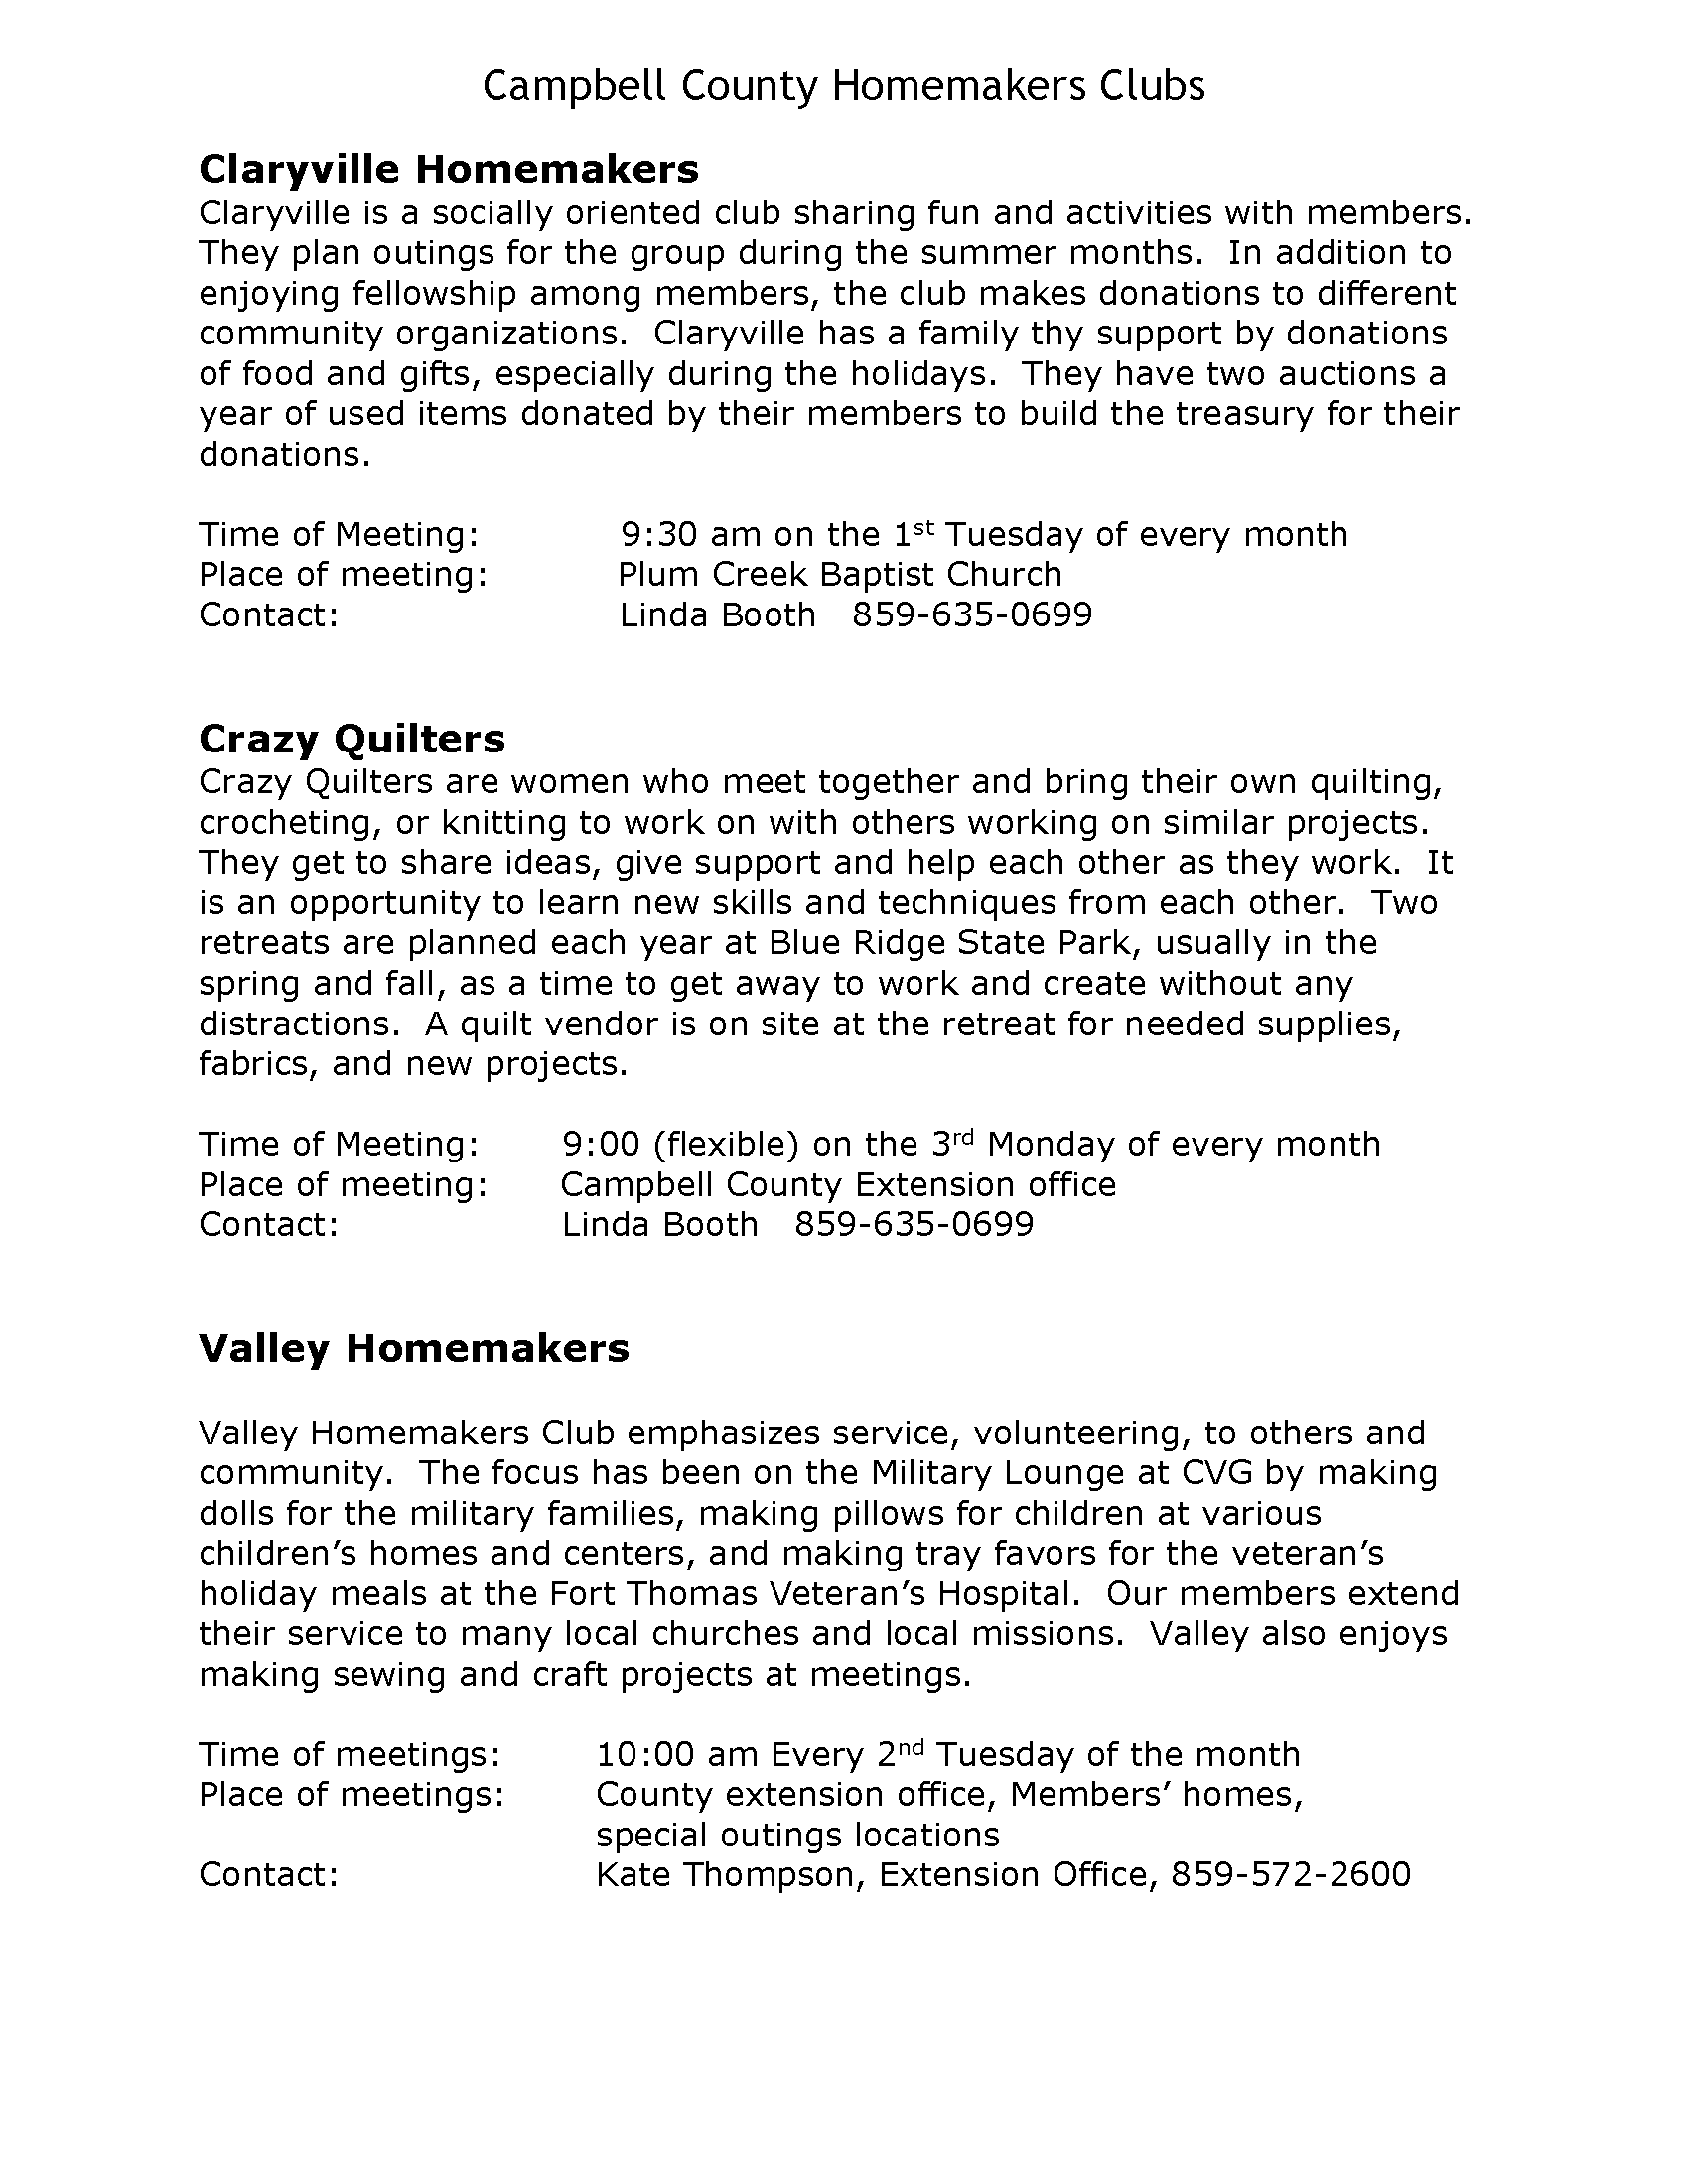 Campbell County Homemakers Clubs Campbell County